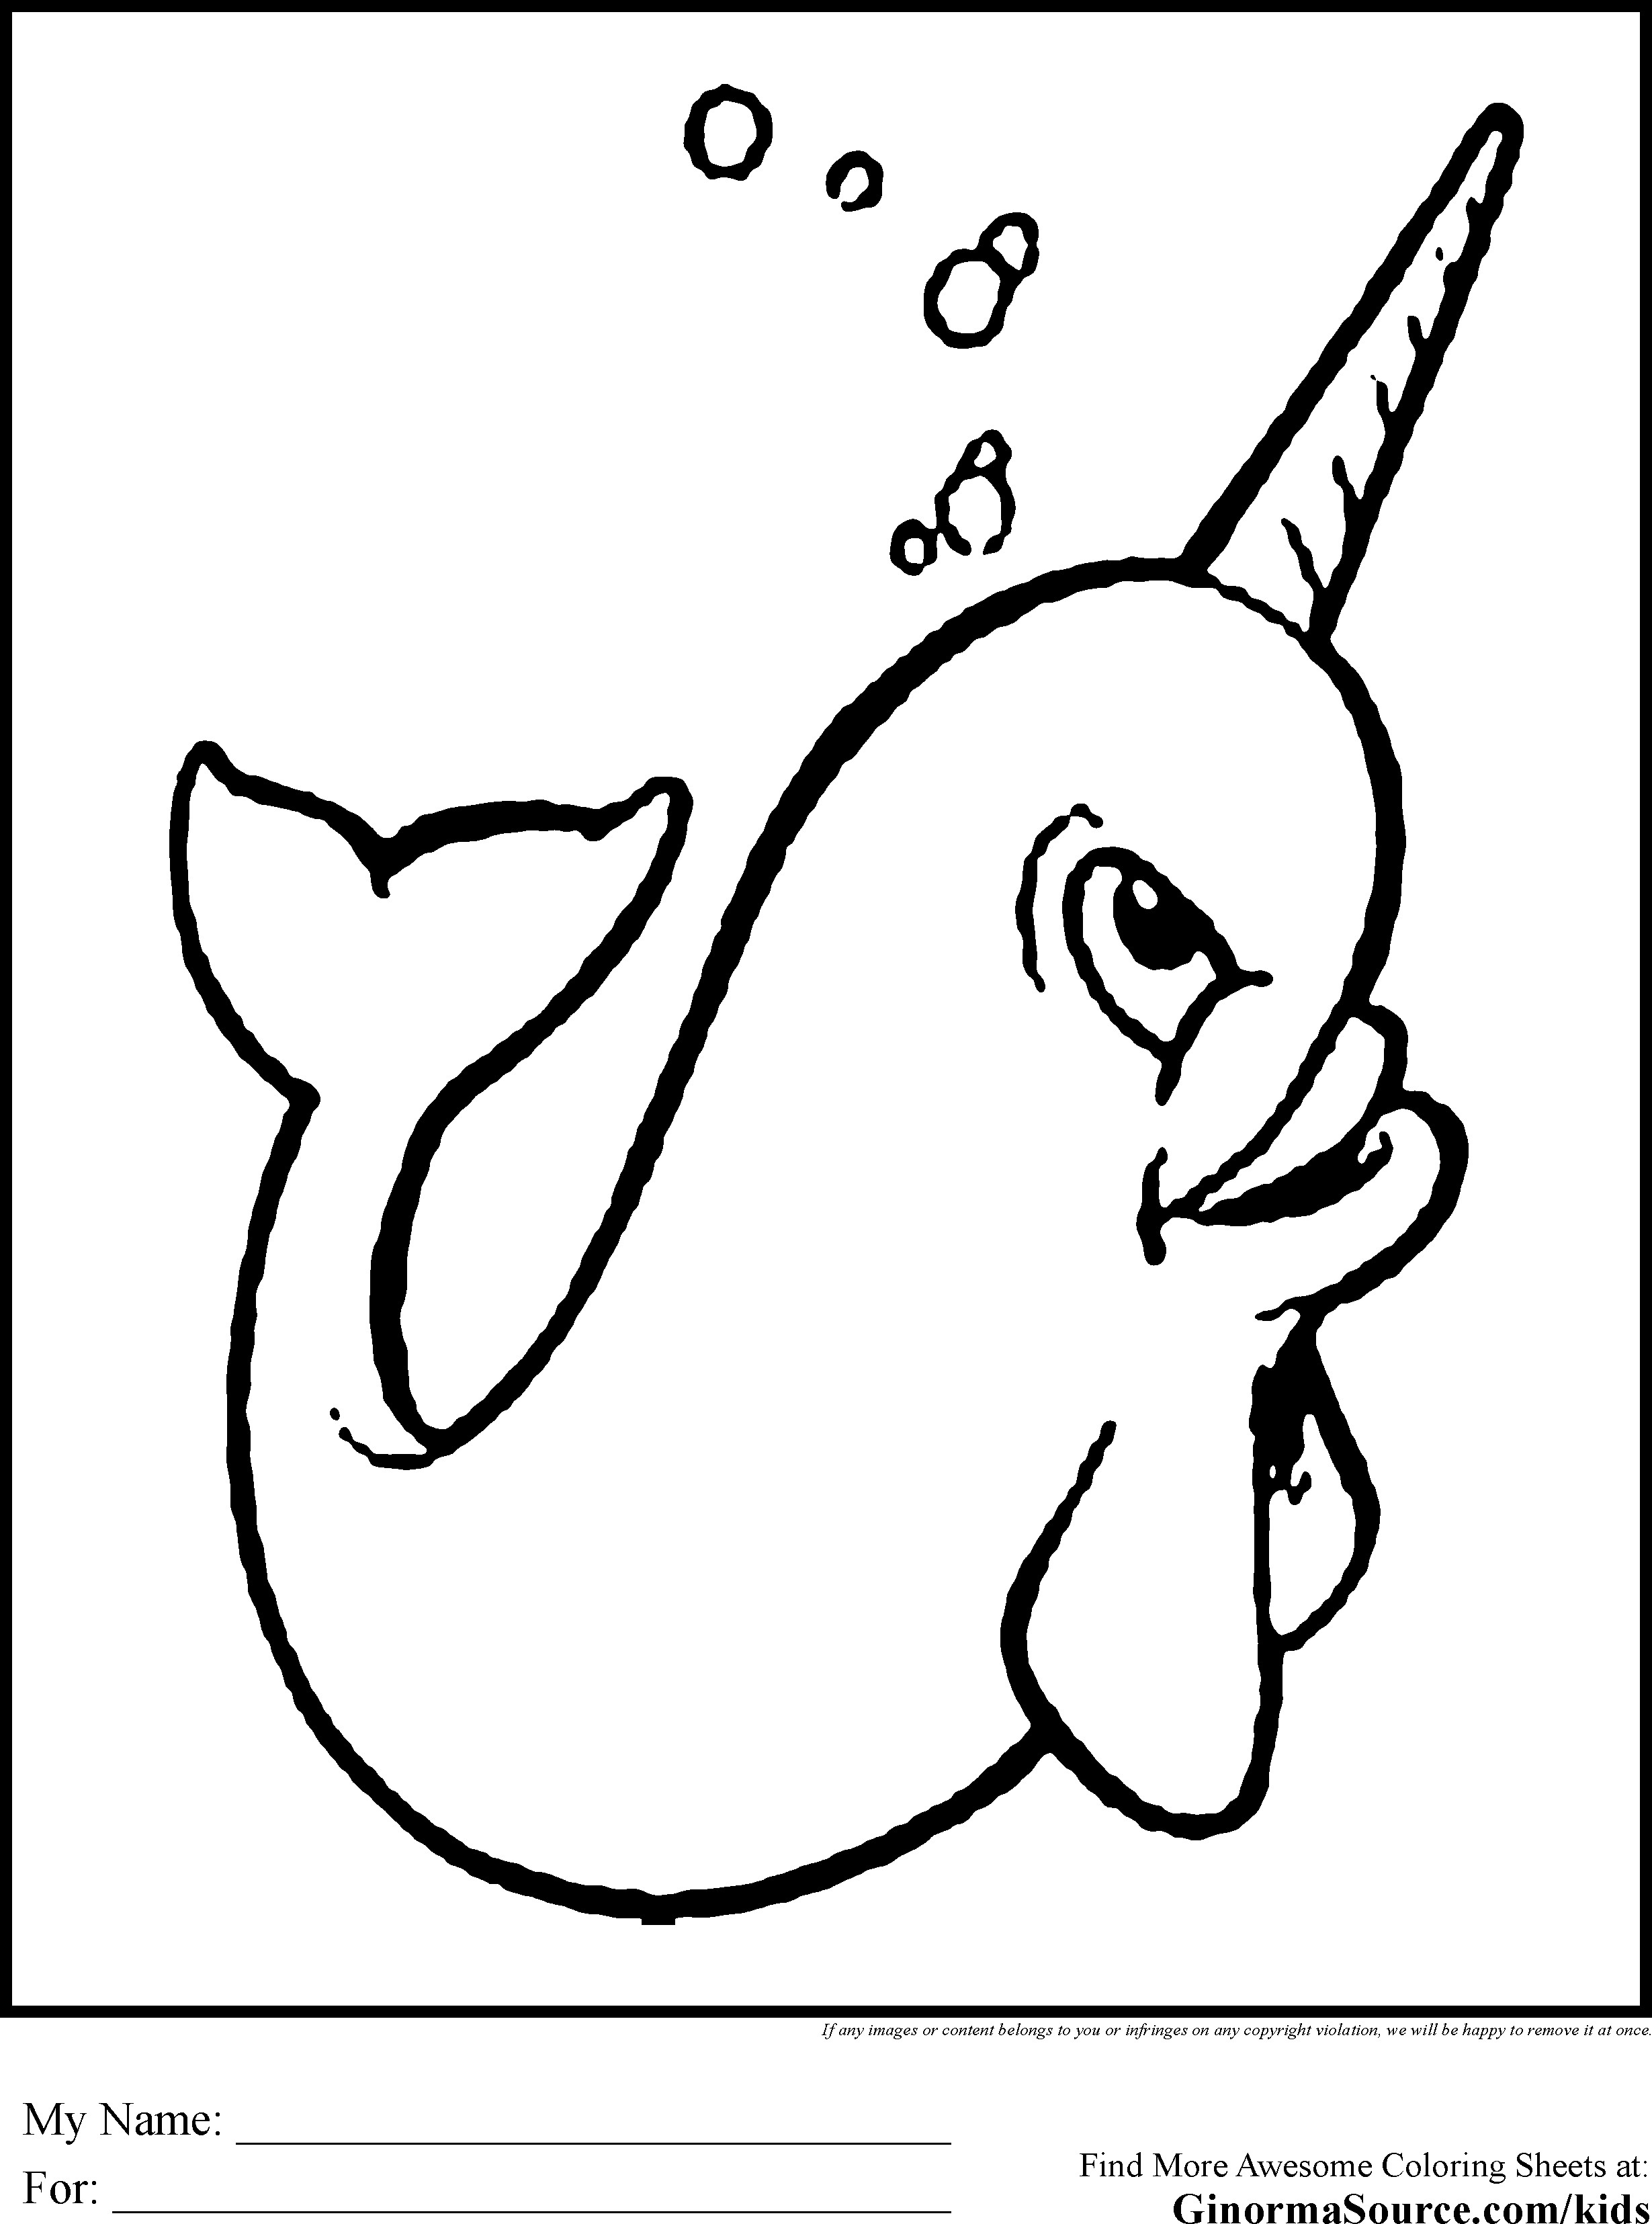 Narwhal Coloring Page At Getcolorings